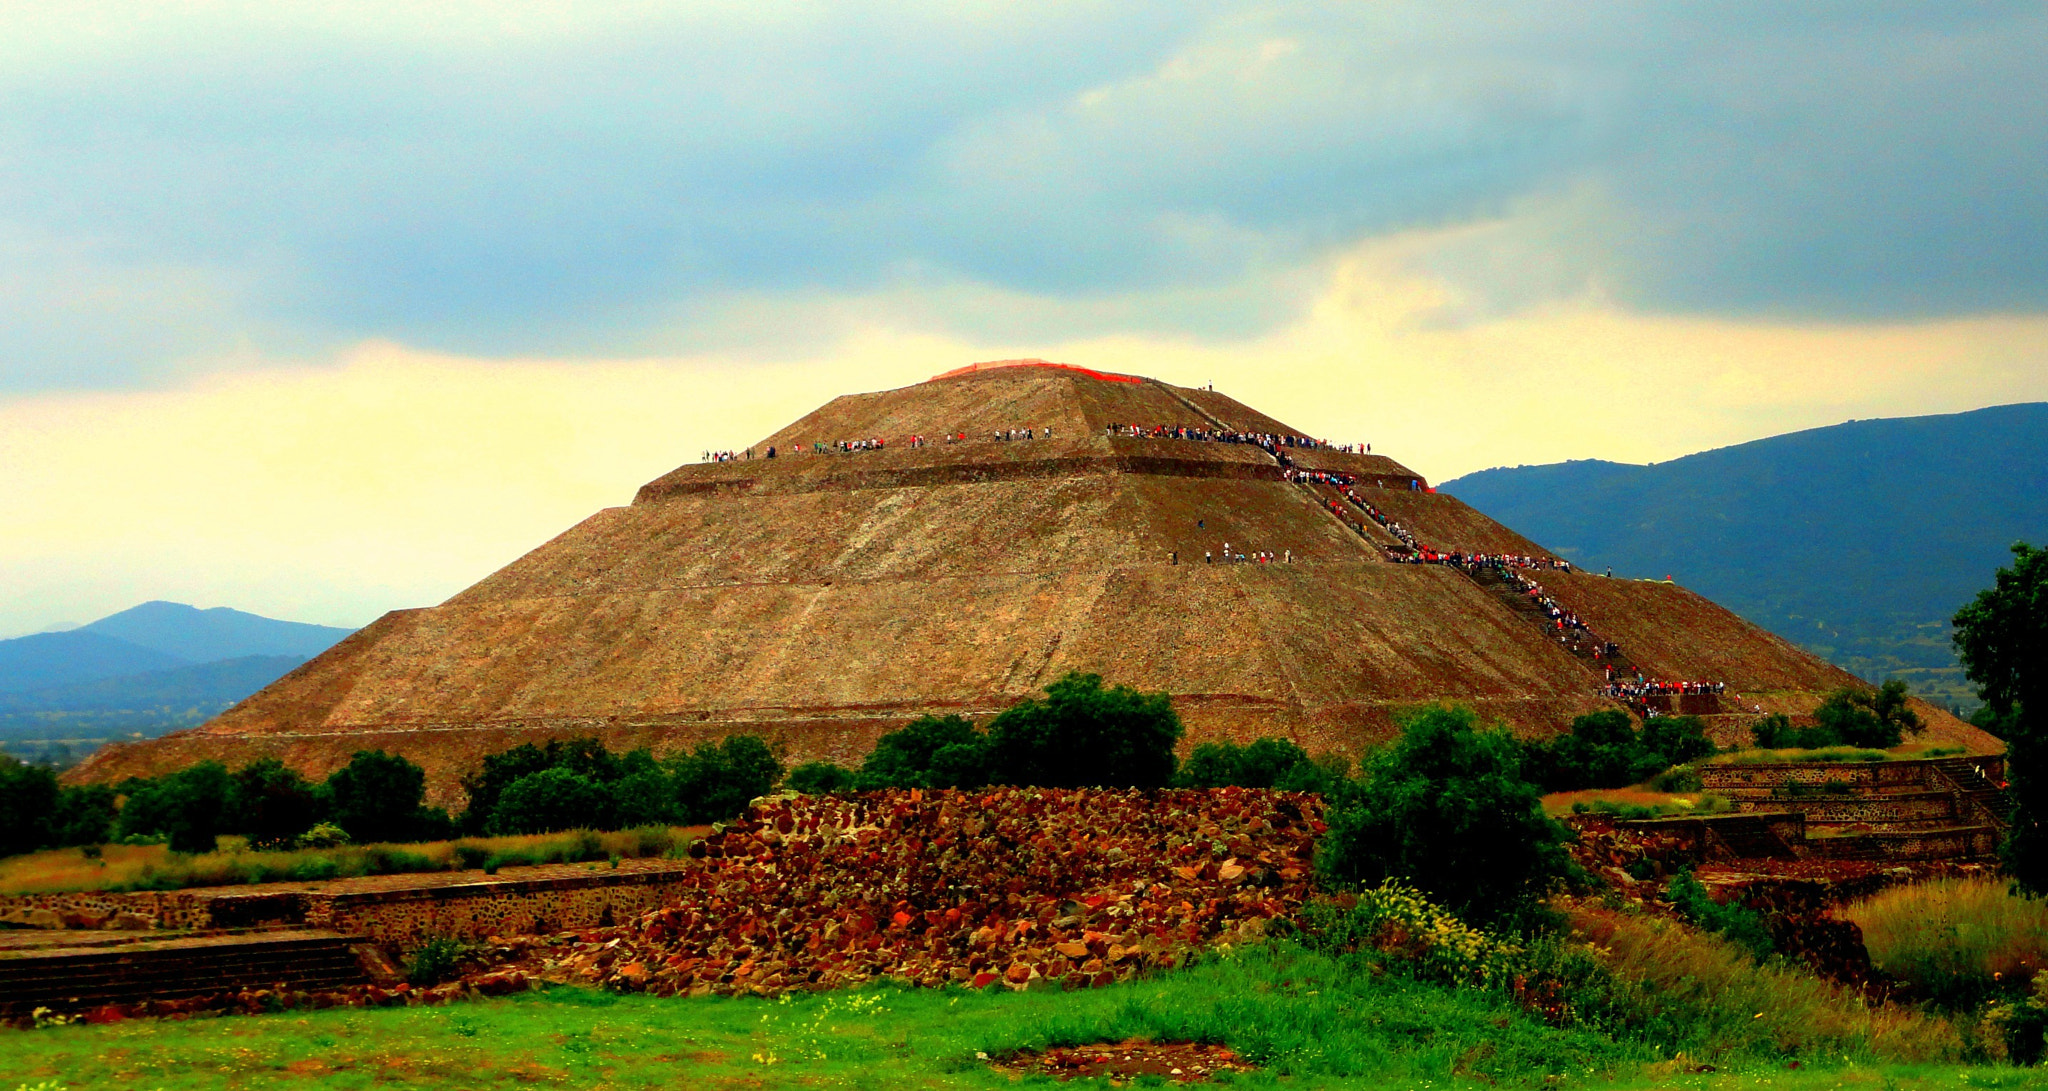 Photograph Teotihuacan by Jesús Quintáns Castillo on 500px